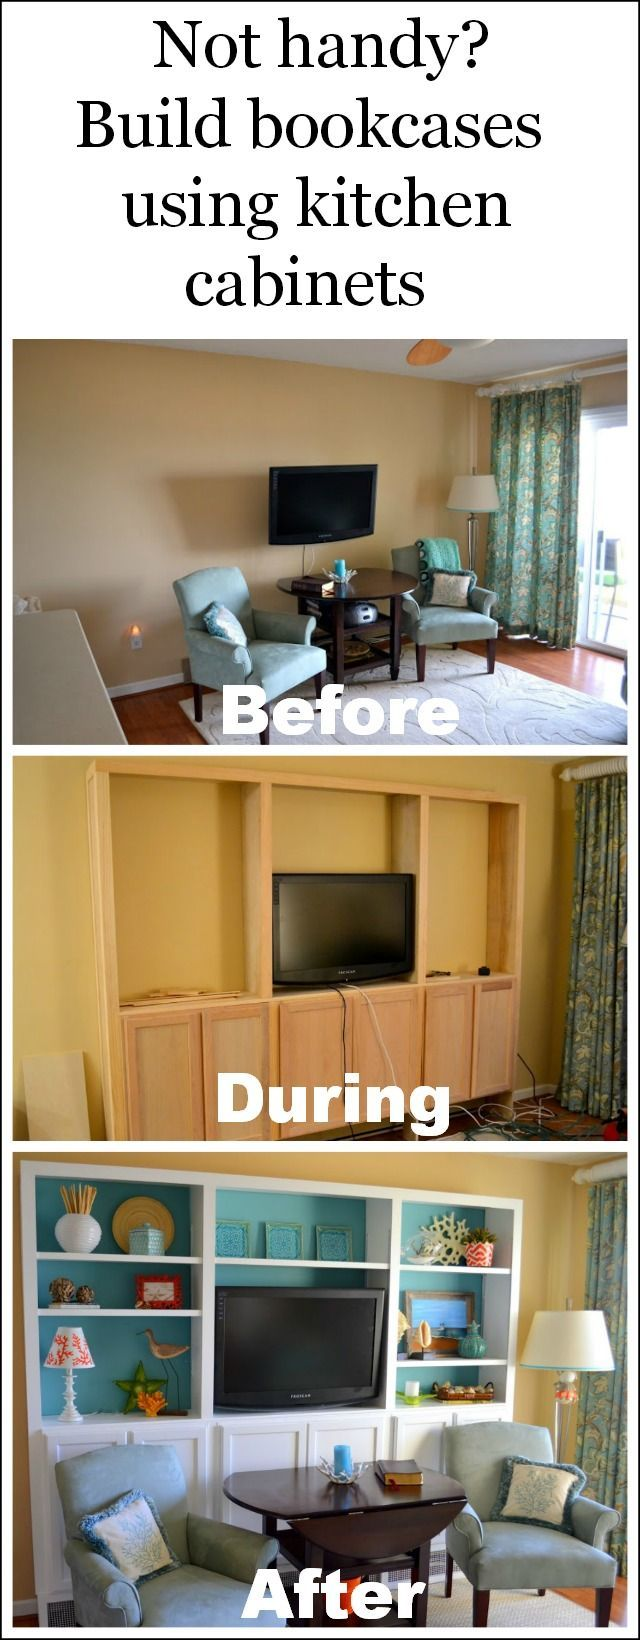 Kitchen Cabinets Turned Into A Bookcase Home Decor Home Home Remodeling